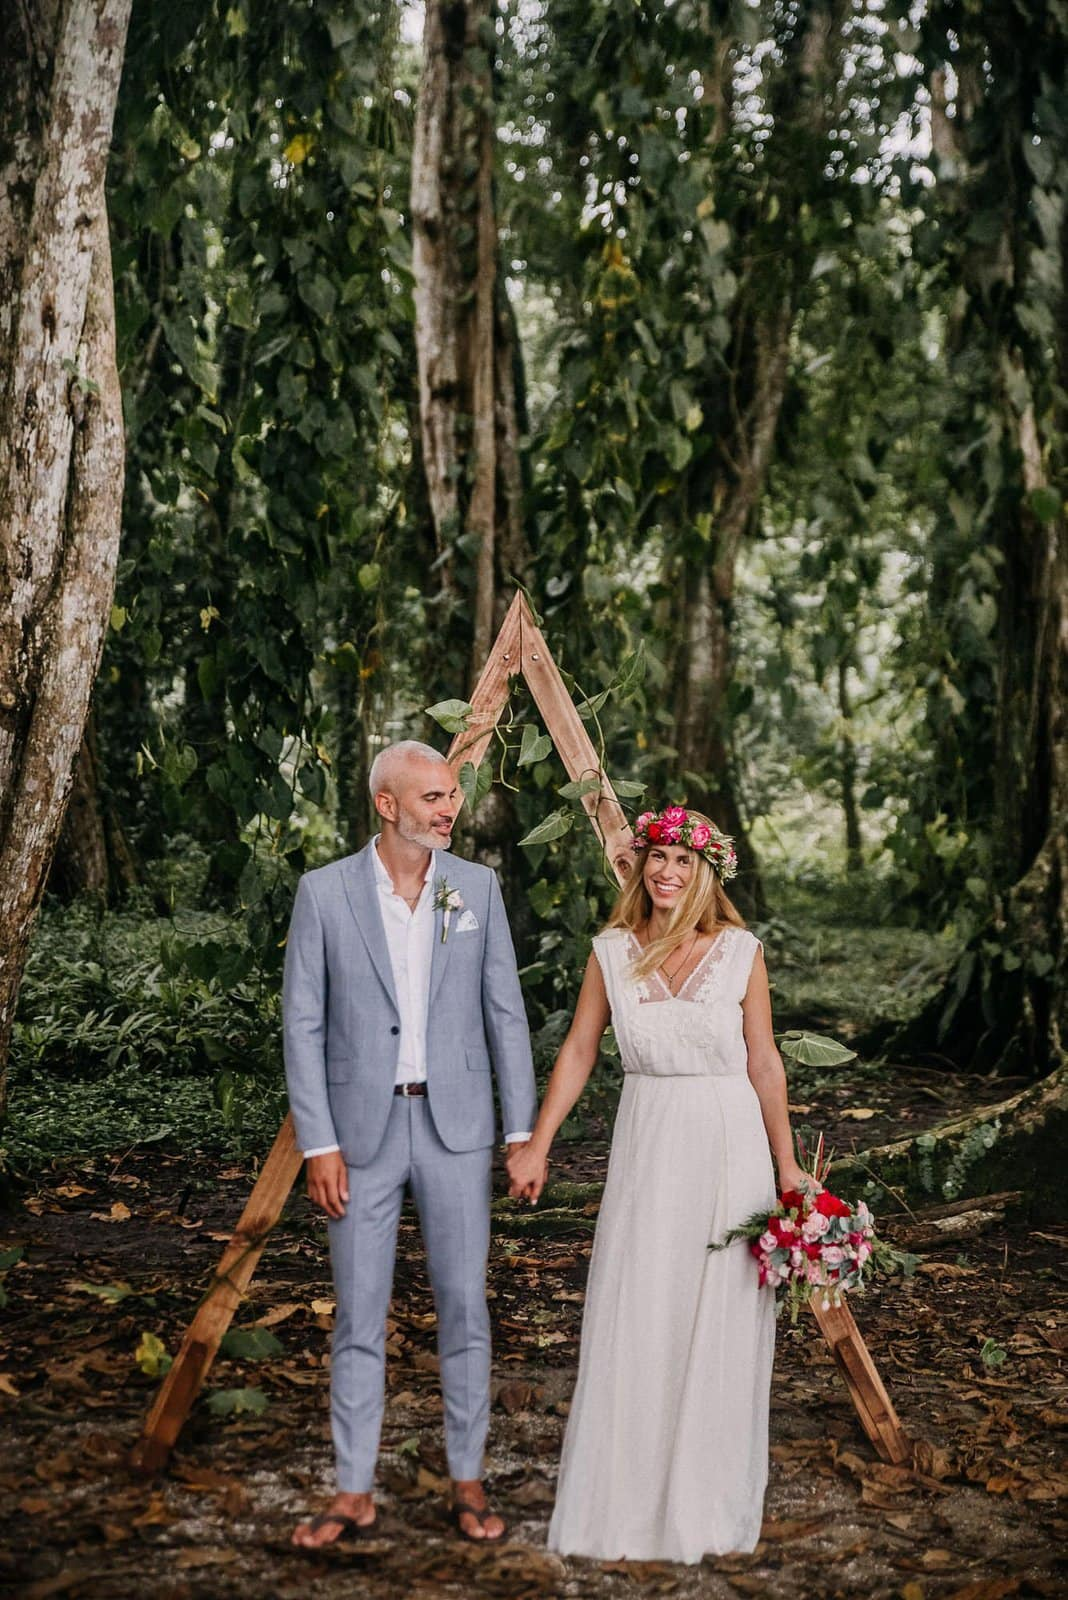 Arch for elopement.